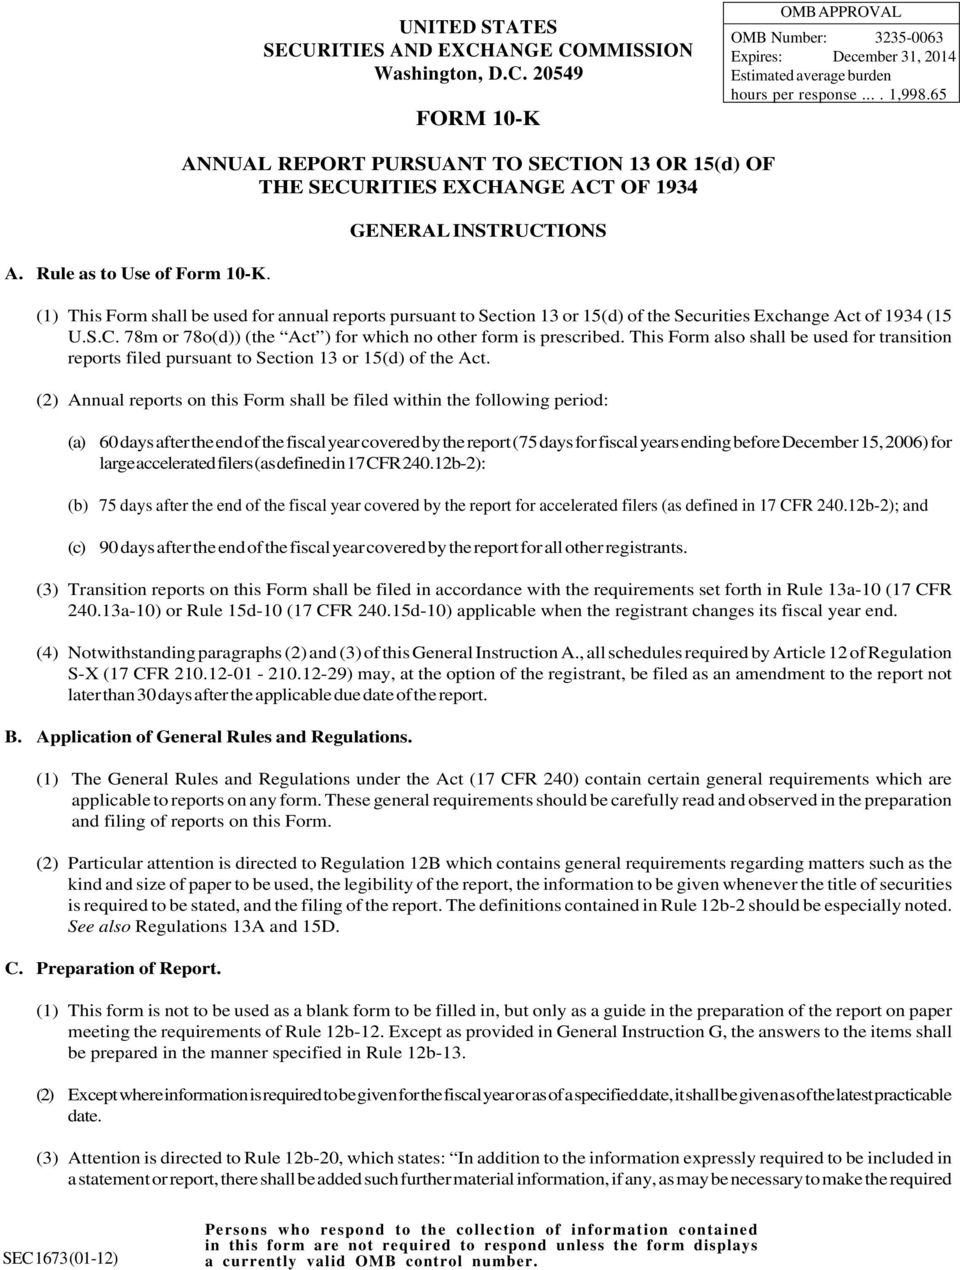 ANNUAL REPORT PURSUANT TO SECTION 13 OR 15(d) OF THE SECURITIES EXCHANGE ACT OF 1934 GENERAL INSTRUCTIONS (1) This Form shall be used for annual reports pursuant to Section 13 or 15(d) of the